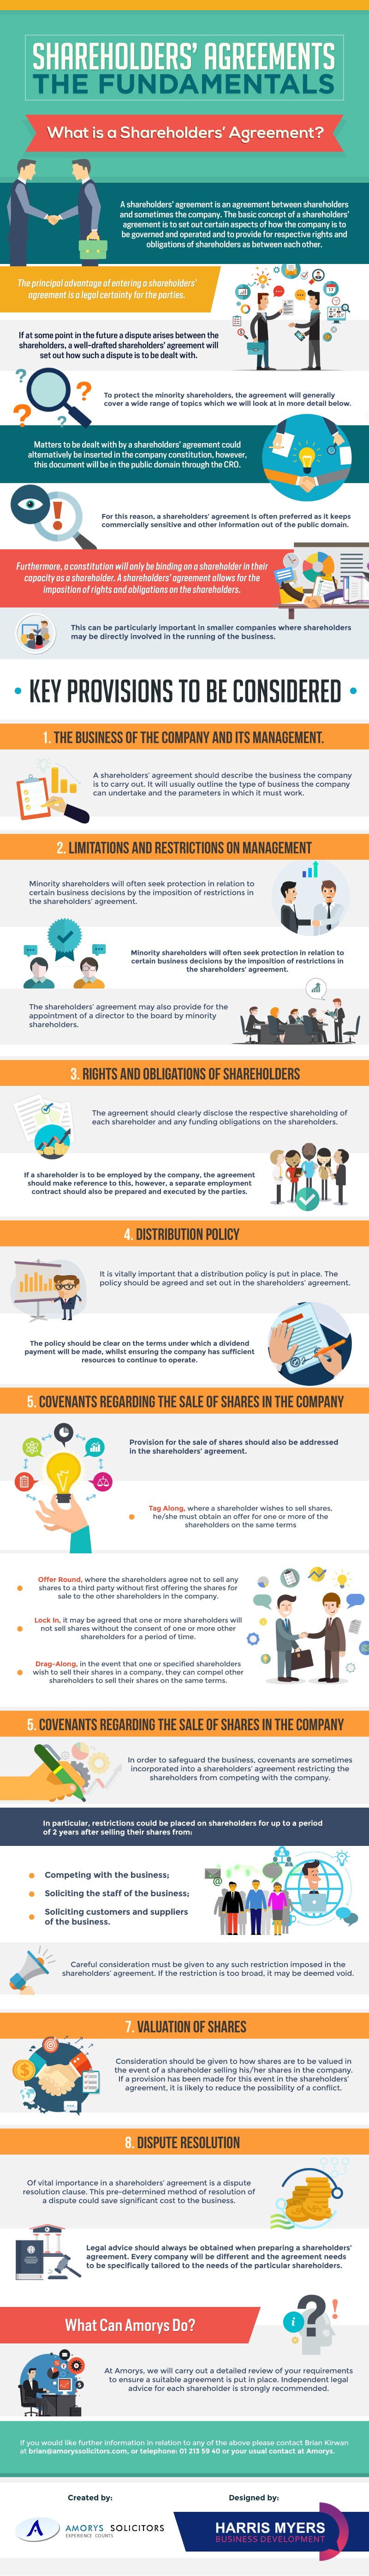 Shareholders Agreements - The Fundamentals - Info-graphic